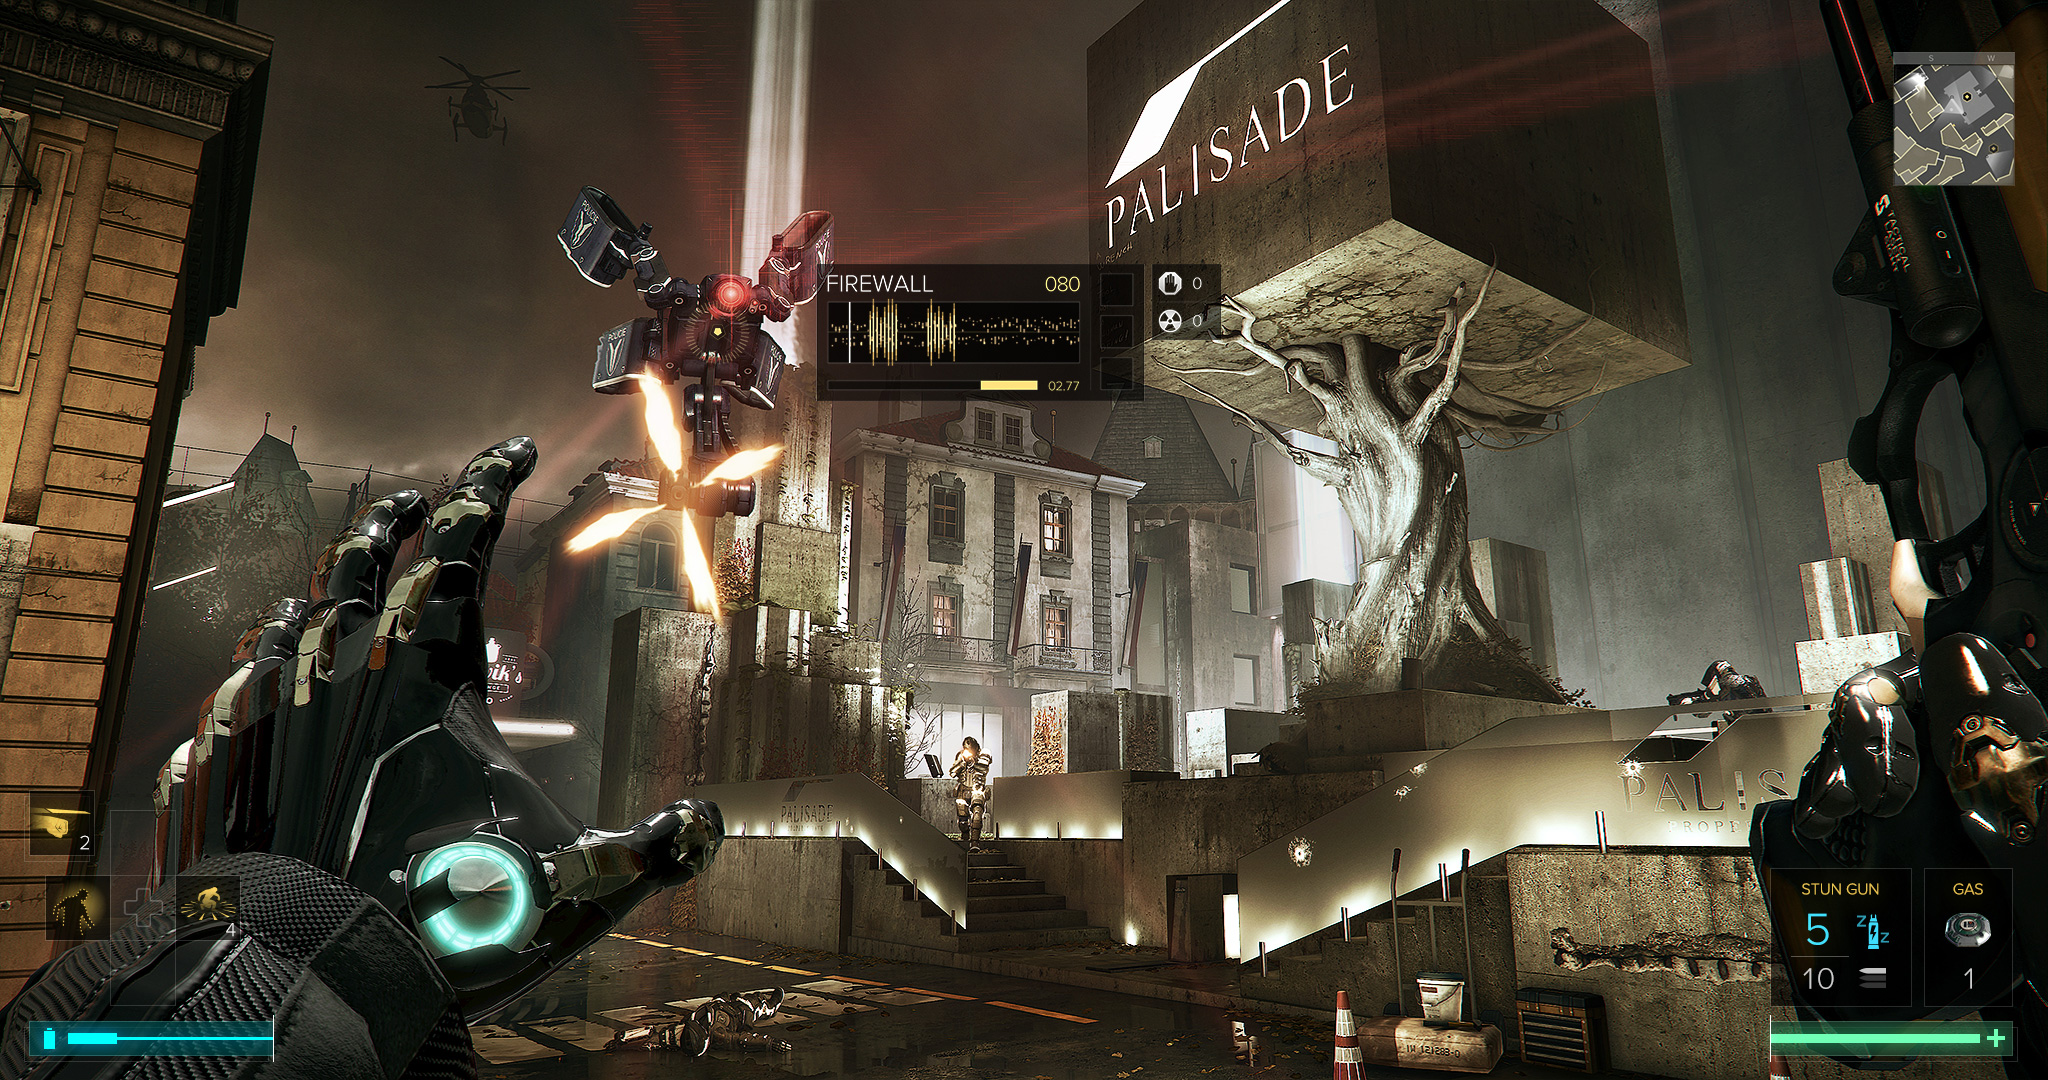 Will Deus Ex: Mankind Divided's season pass finish the game?